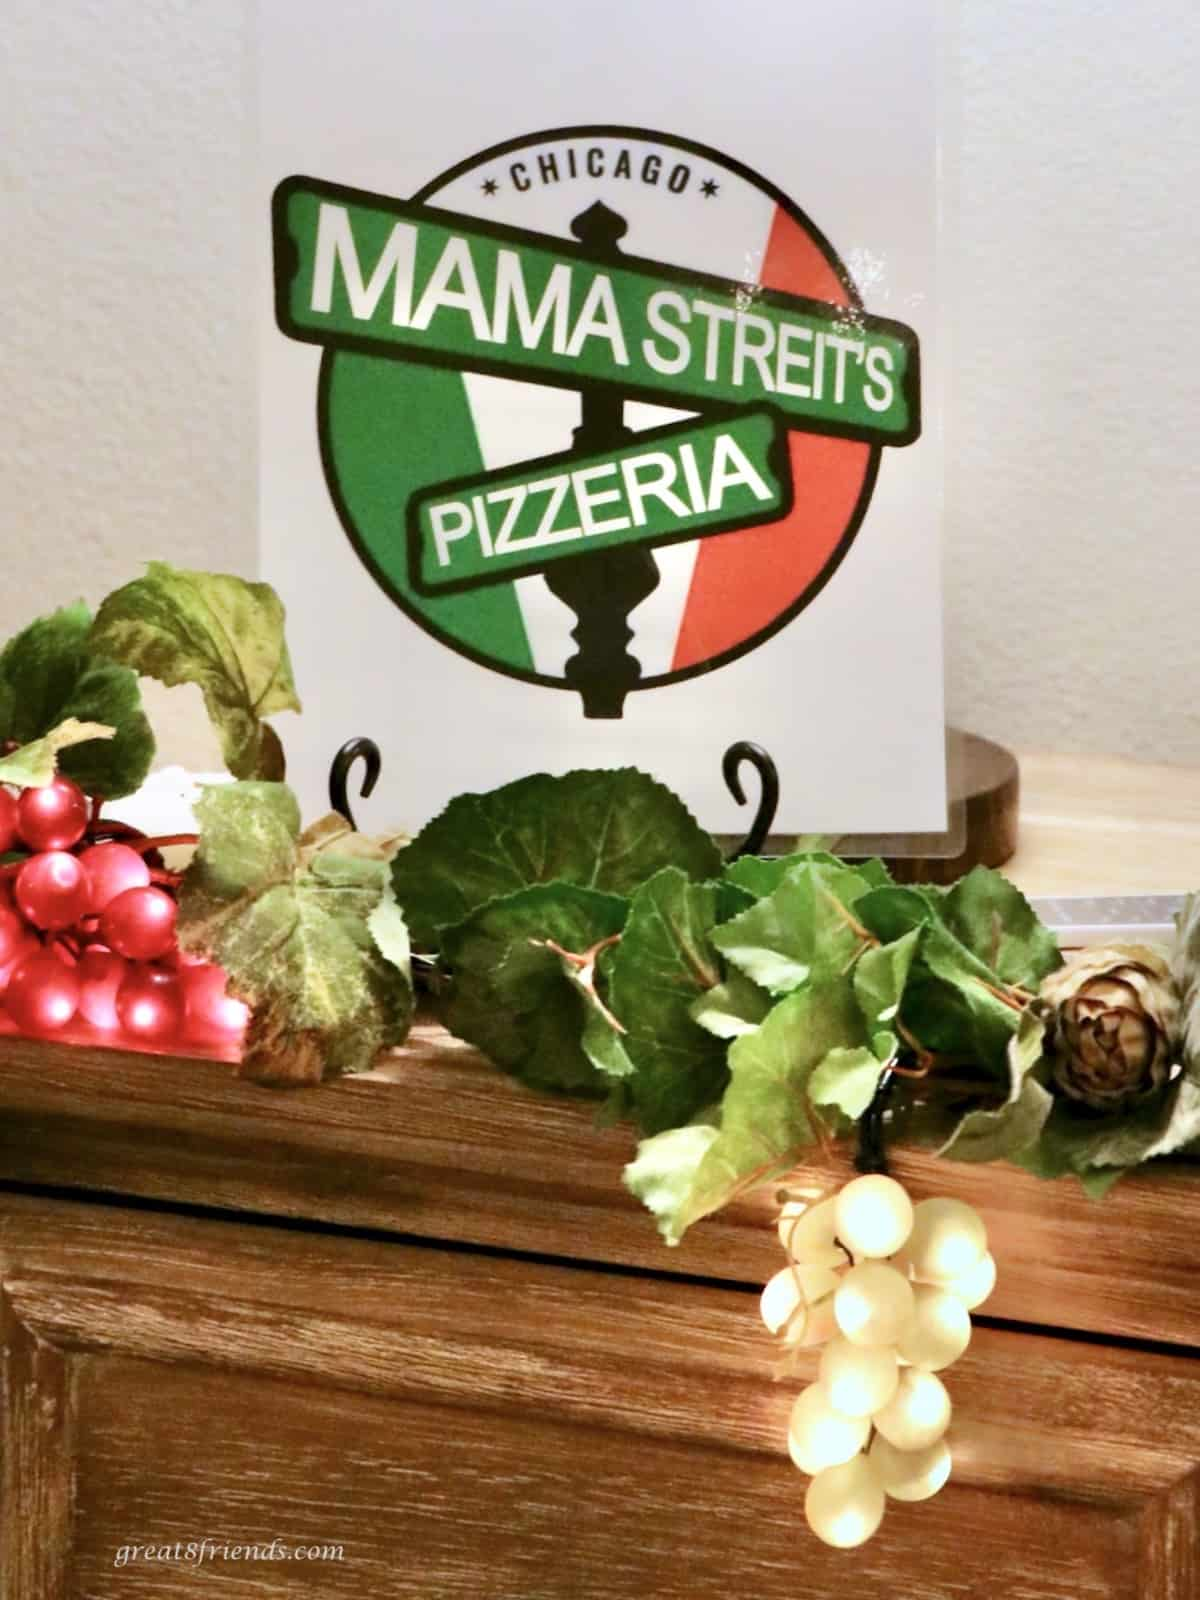 Mama Streit's Pizzeria sign on a mantle with decorative green and red grapes with lights.